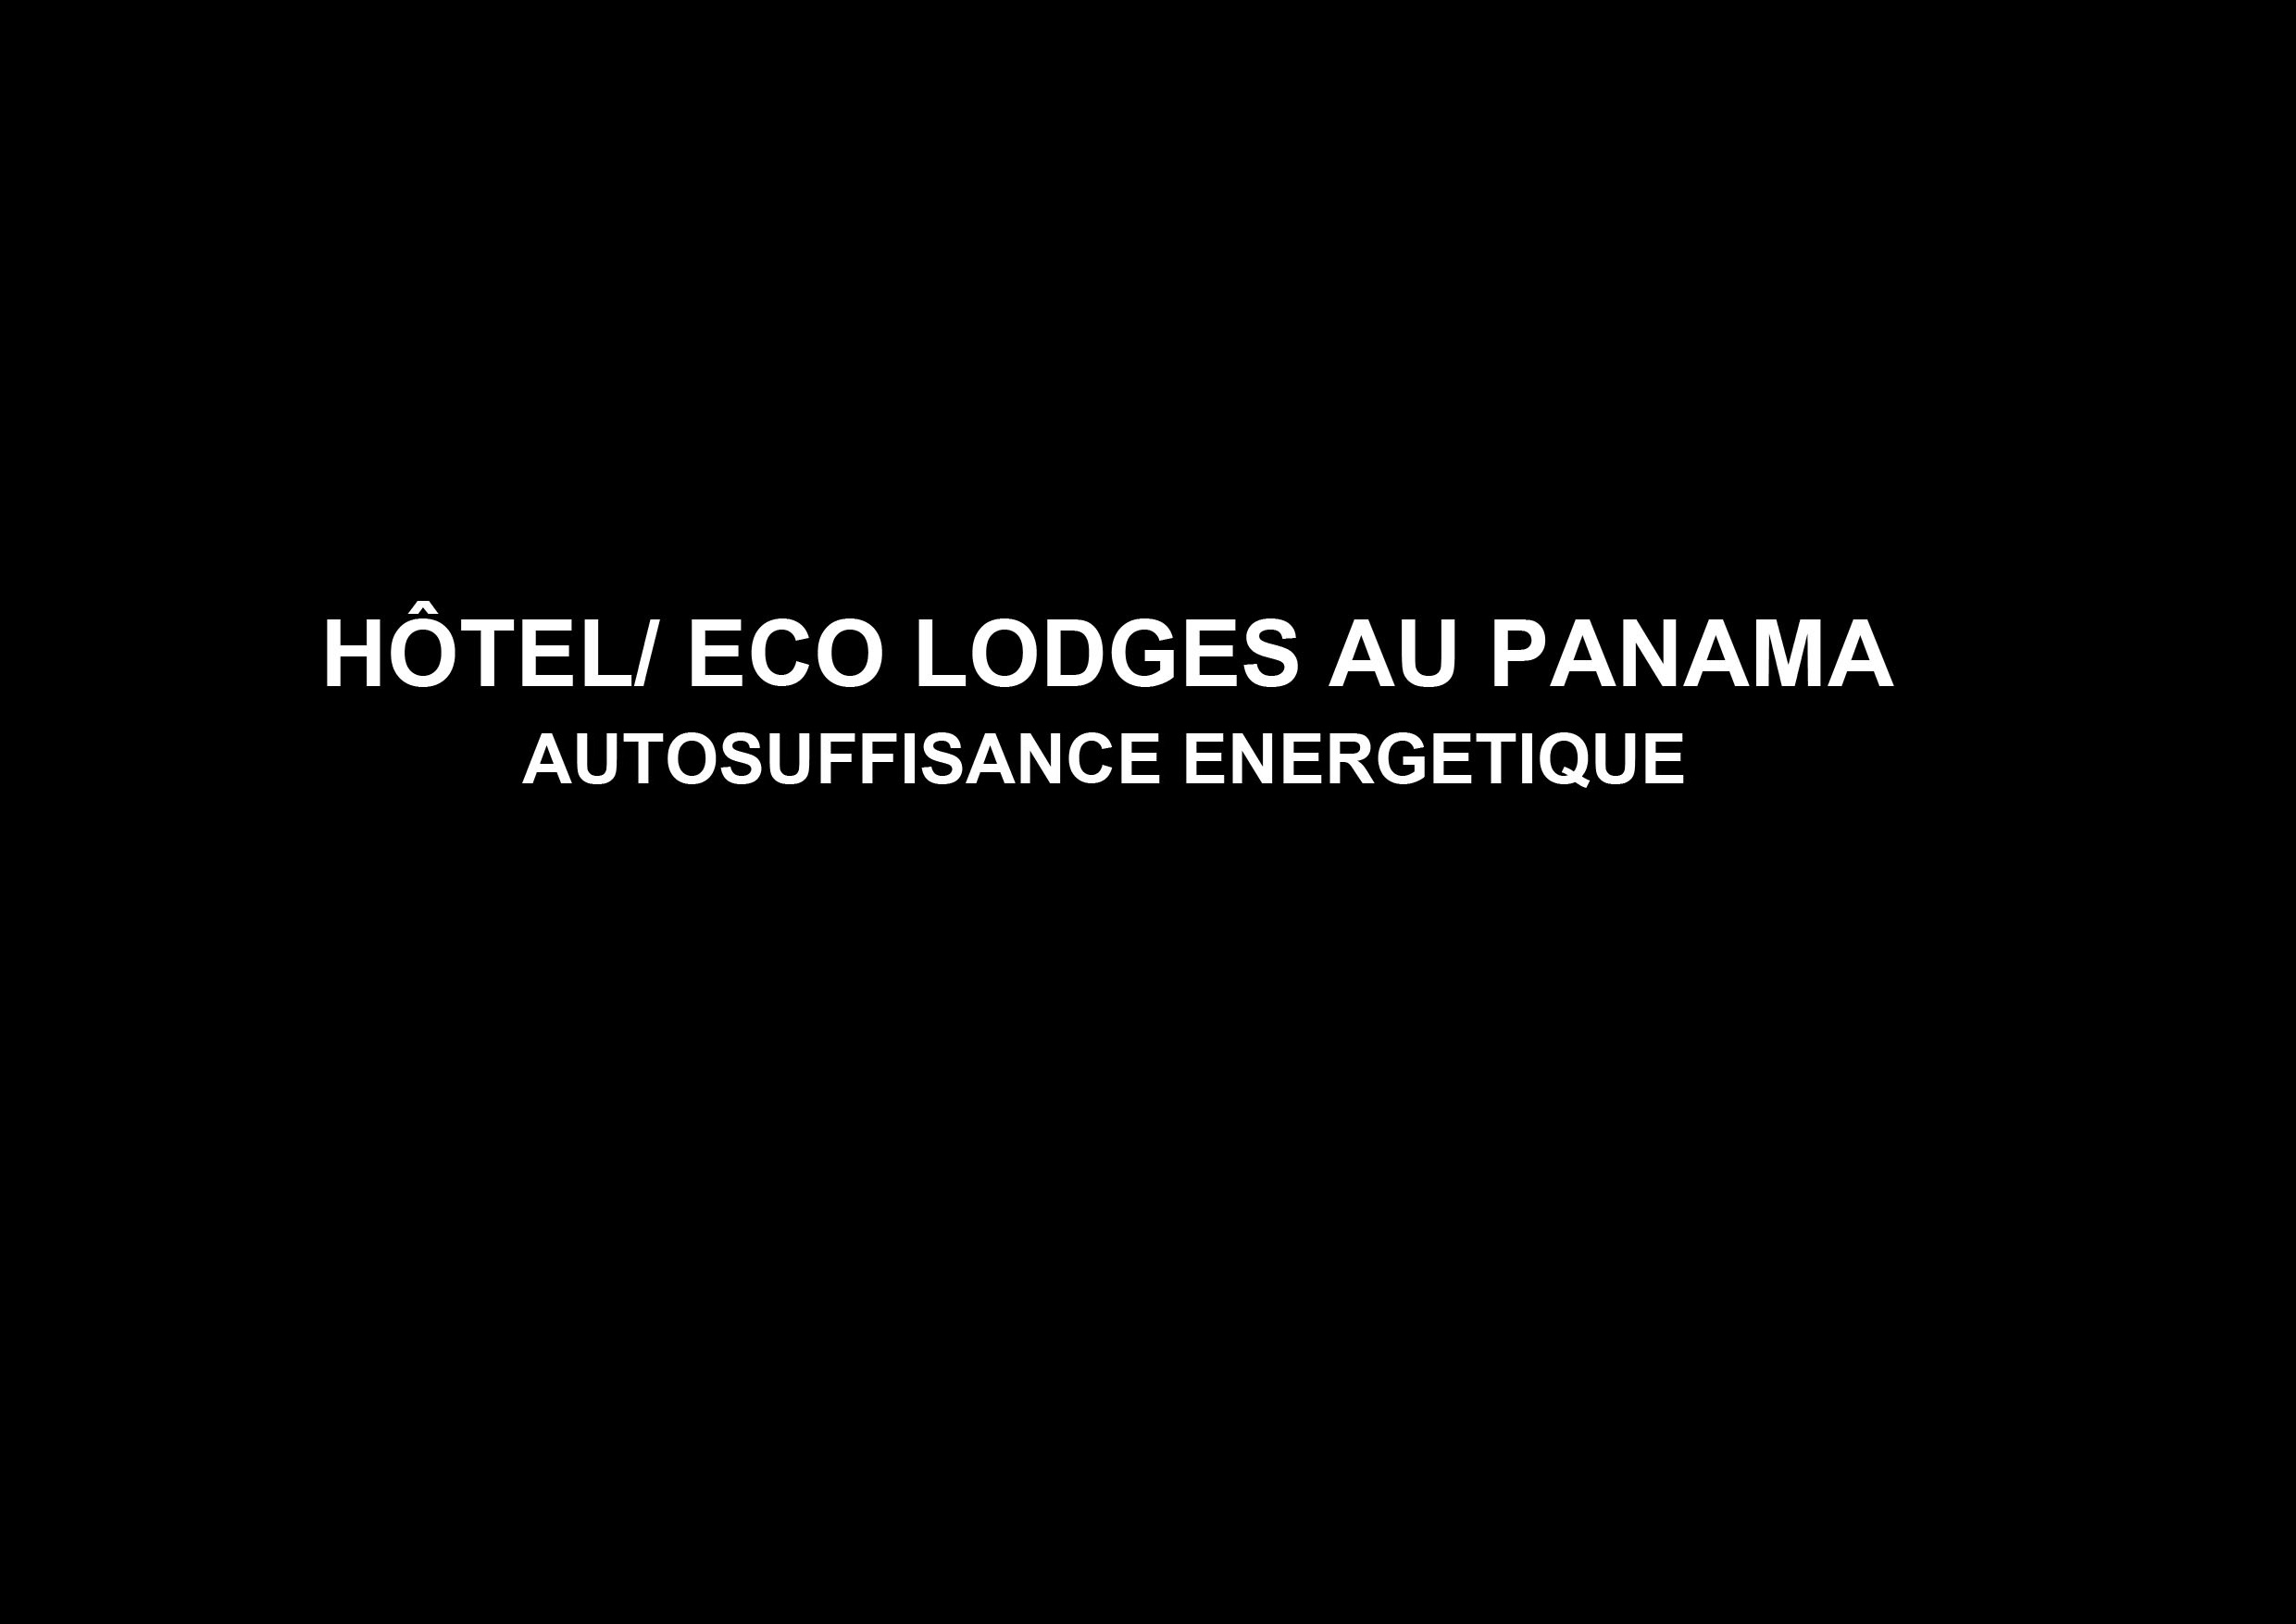 Hôtel/Eco lodges au PANAMA